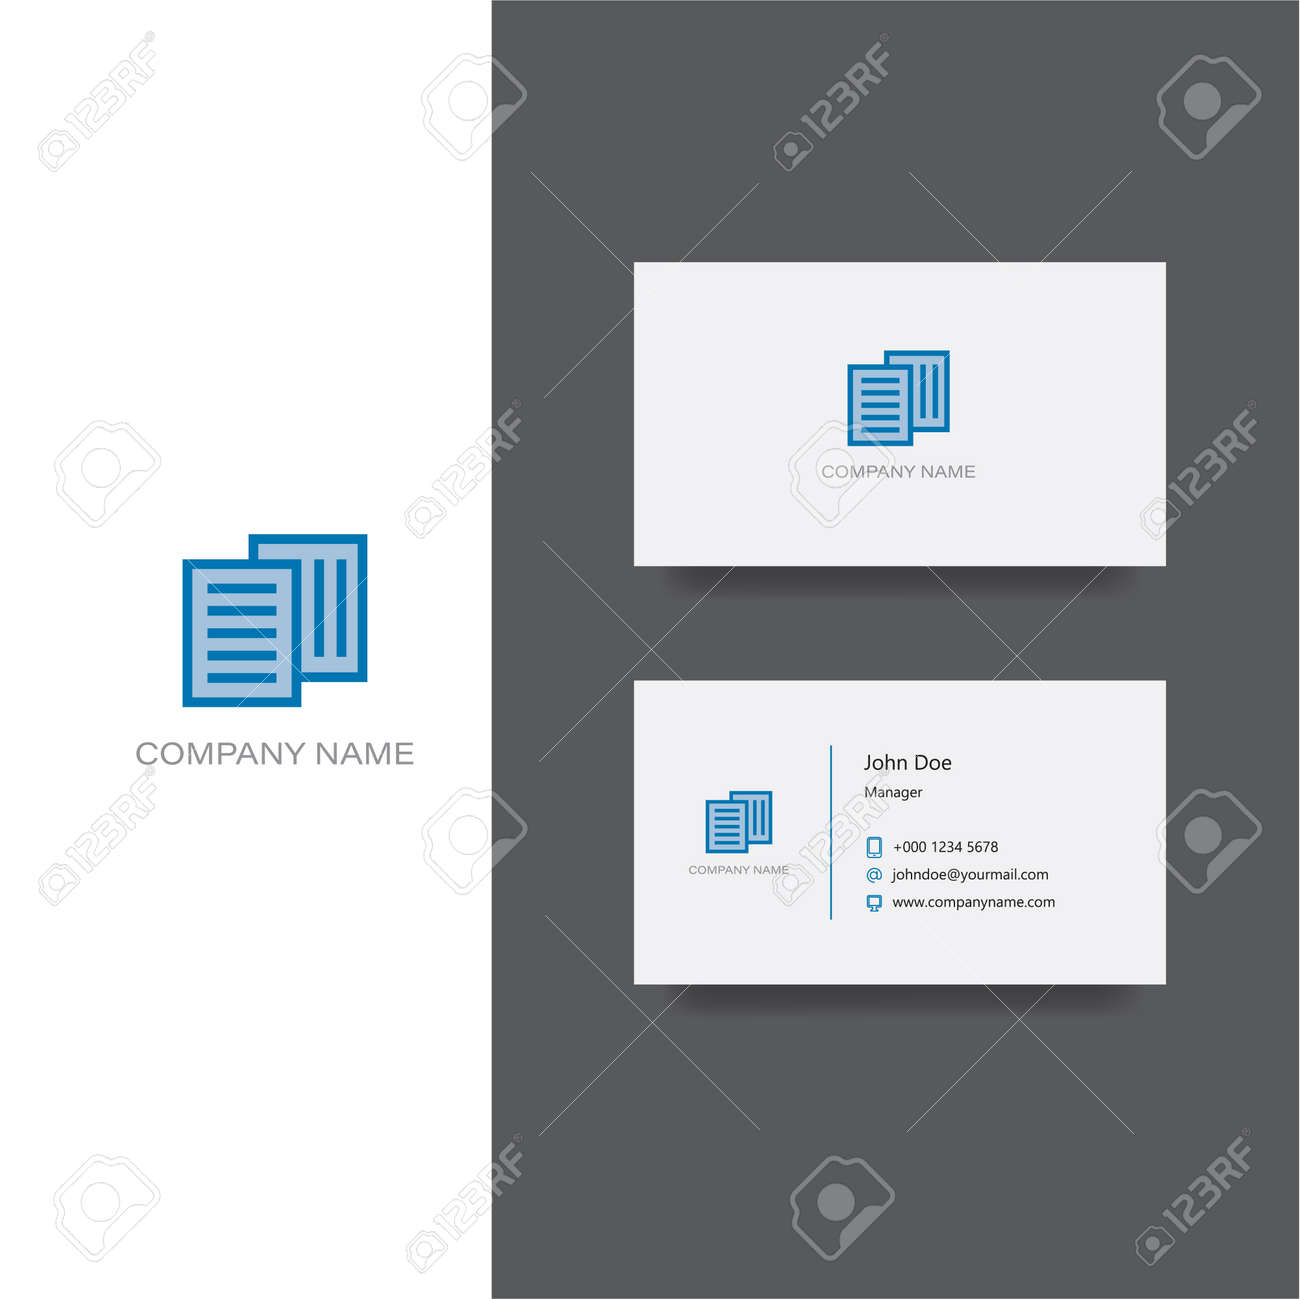 Finance Documents Company Logo And Business Card Template Royalty